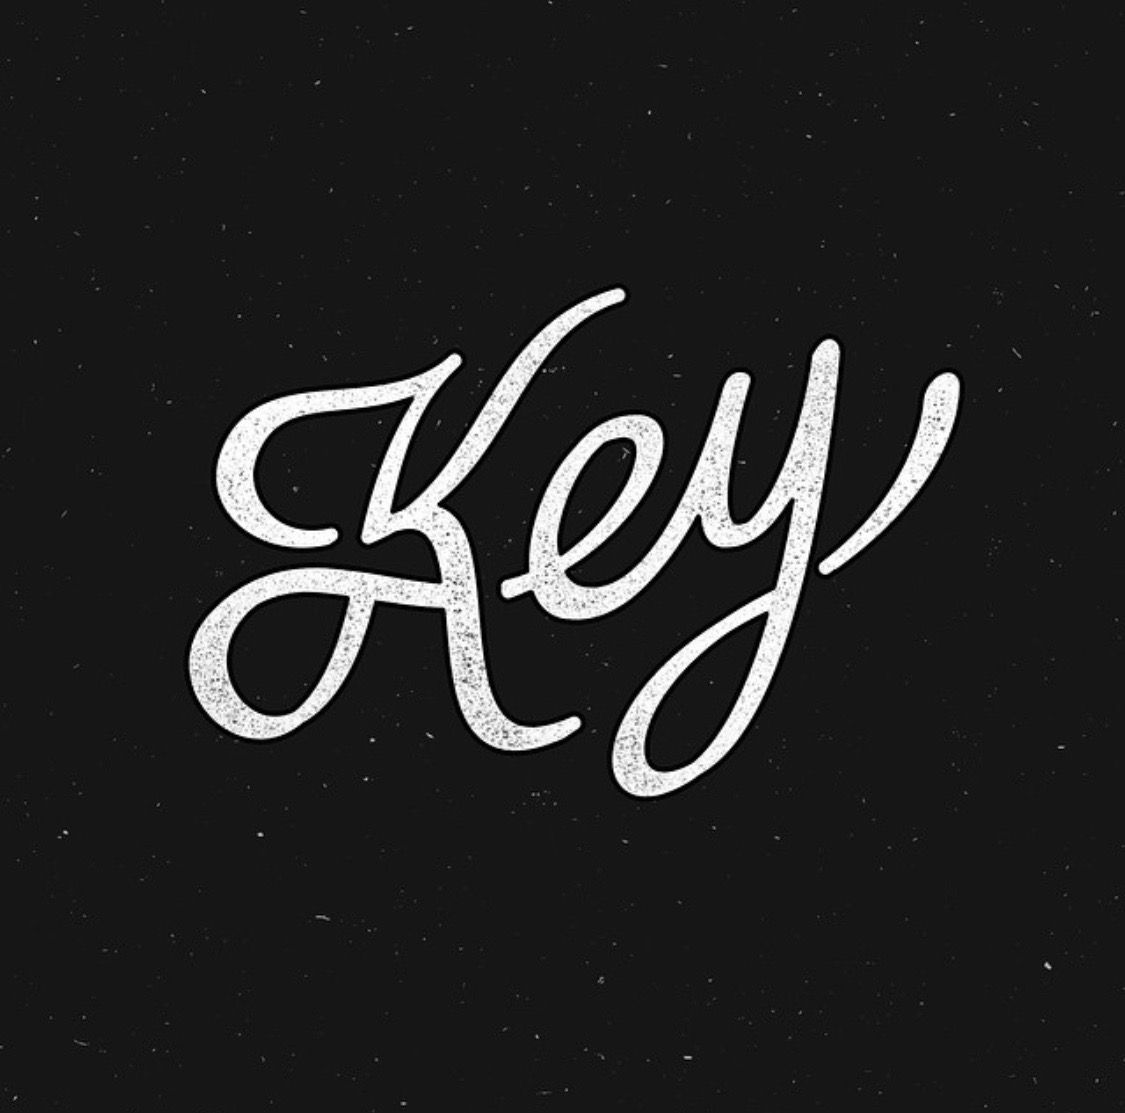 Key design and lettering